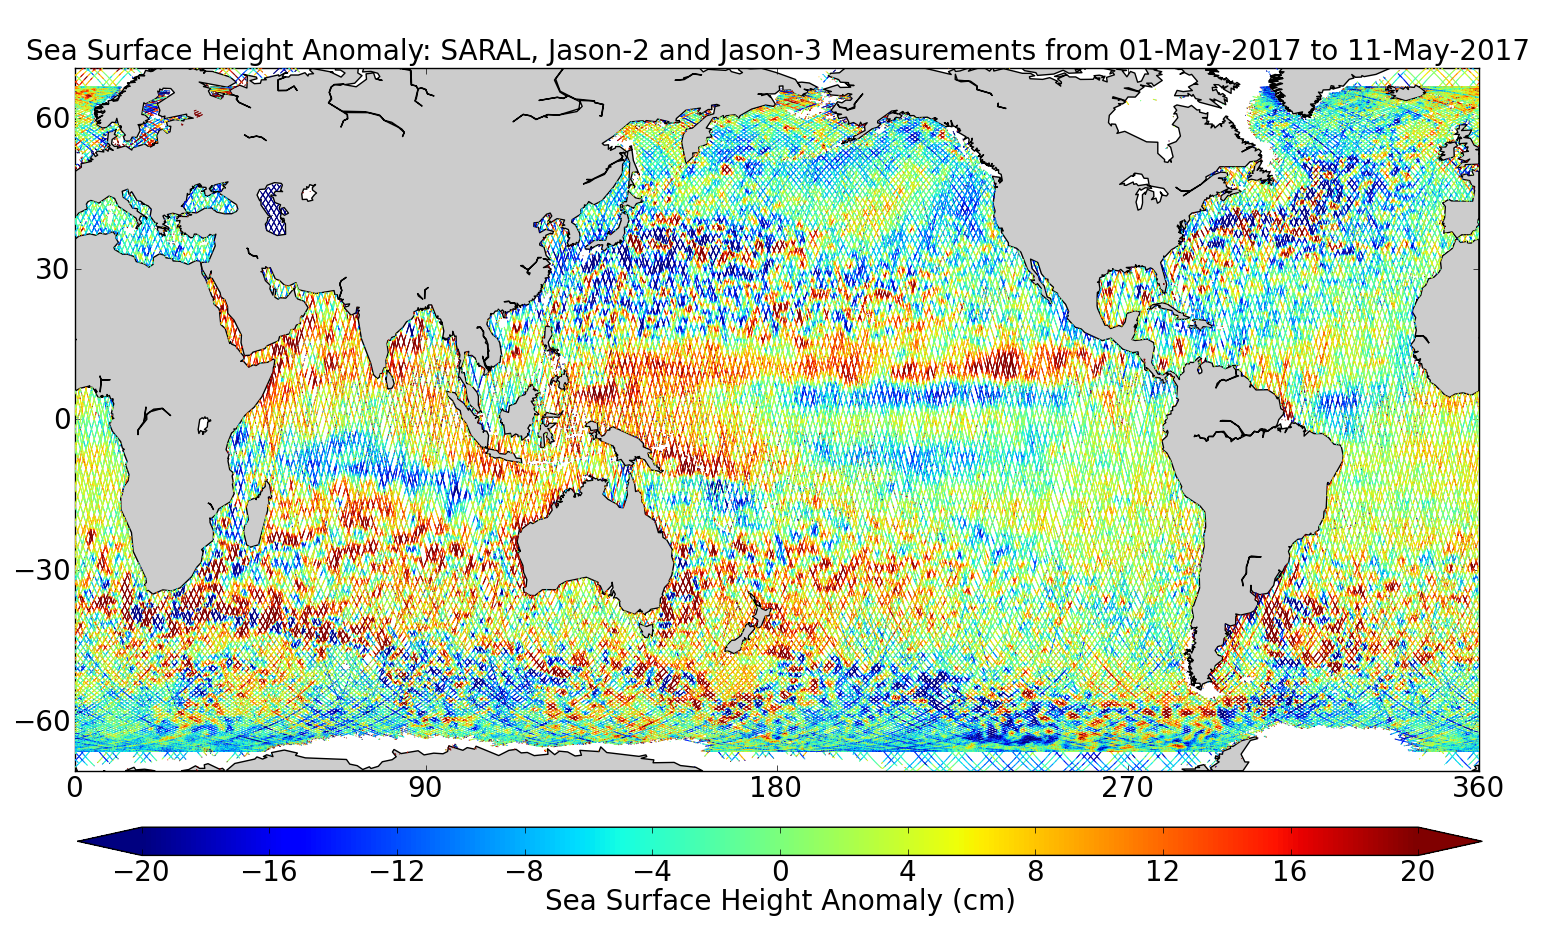 Sea Surface Height Anomaly: SARAL, Jason-2 and Jason-3 Measurements from 01-May-2017 to 11-May-2017